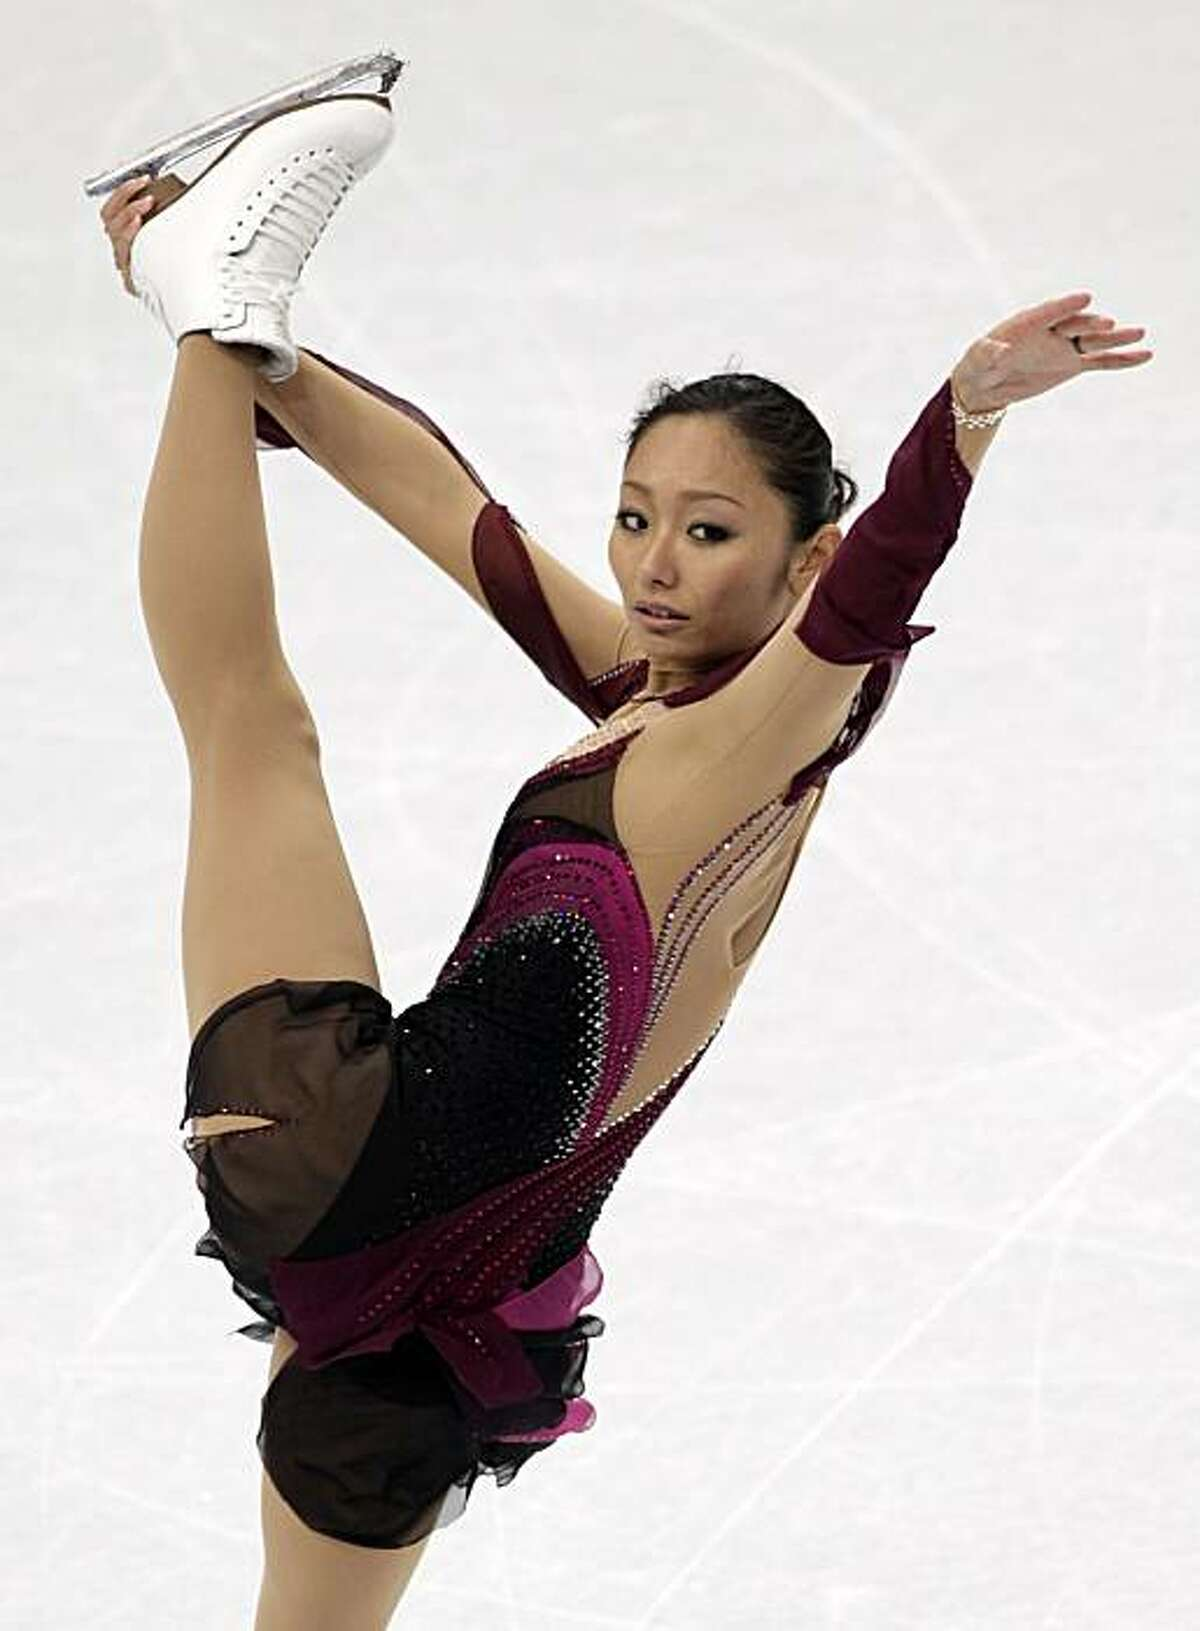 Japan's Miki Ando works on her routine during training for the Vancouver 2010 Olympics in Vancouver, British Columbia, Monday, Feb. 22, 2010.